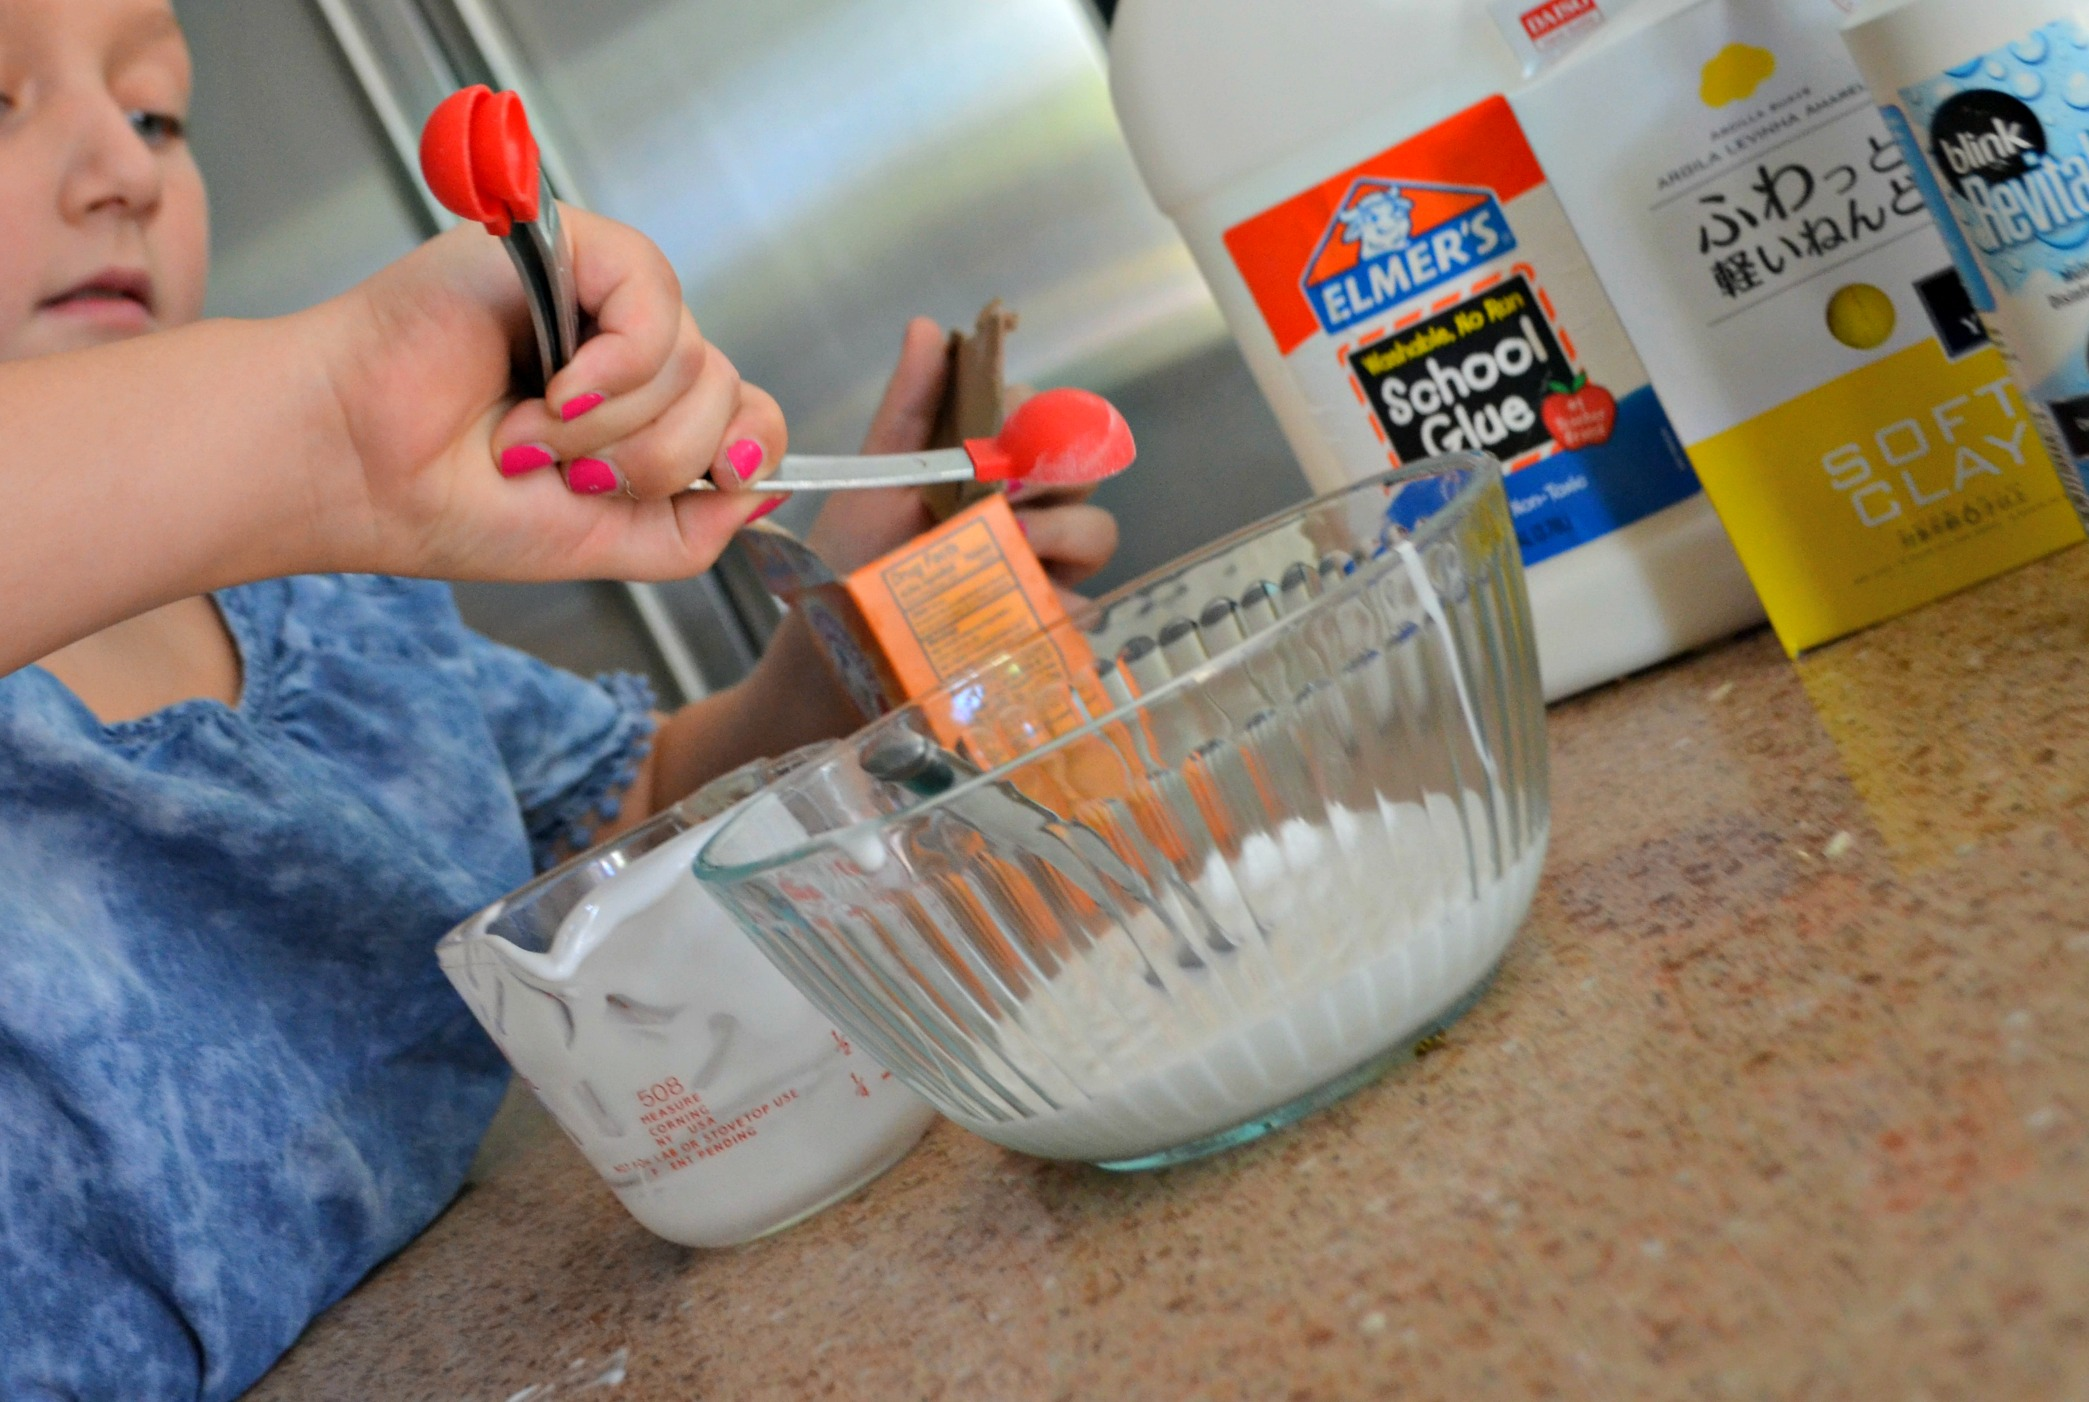 Make diy butter slime using clay – Putting ingredients together